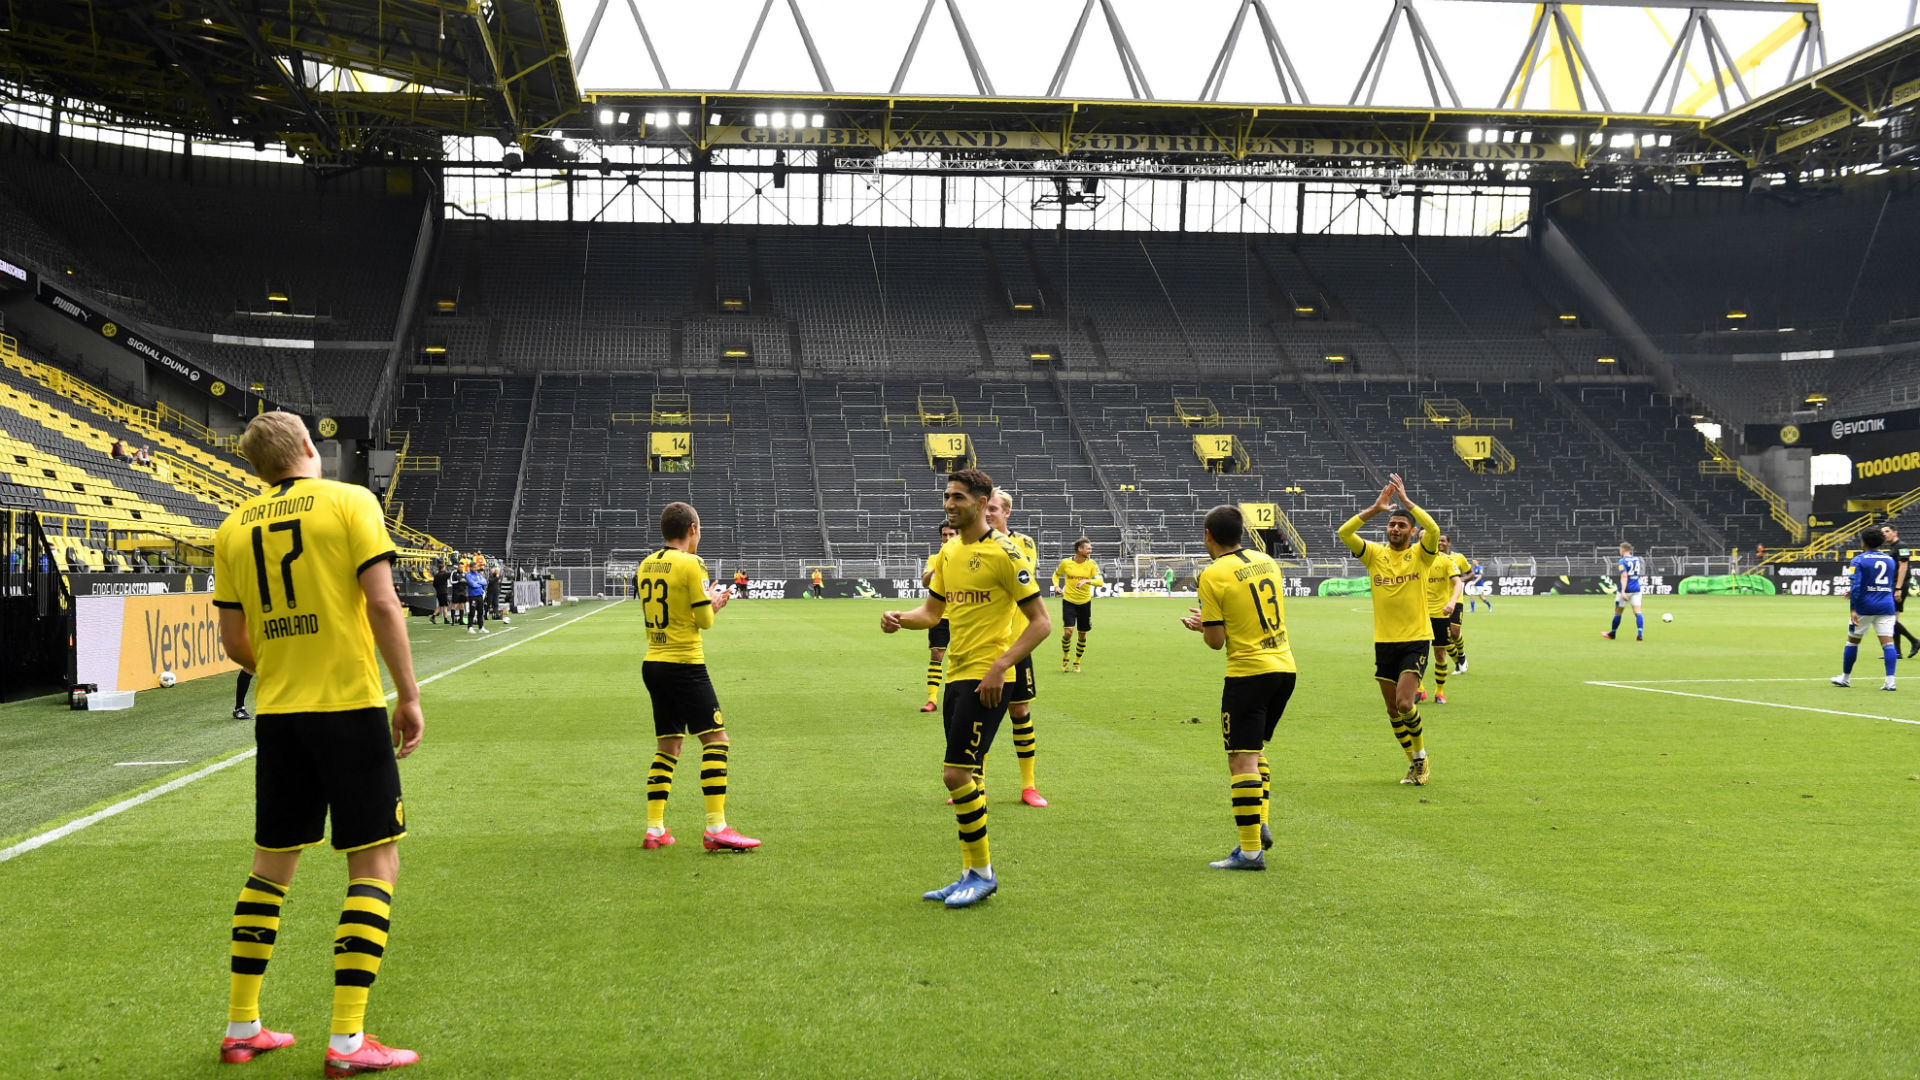 Bundesliga's return to action, Dortmund's big victory demonstrate 'new normal' is not as abnormal as many suggest 1